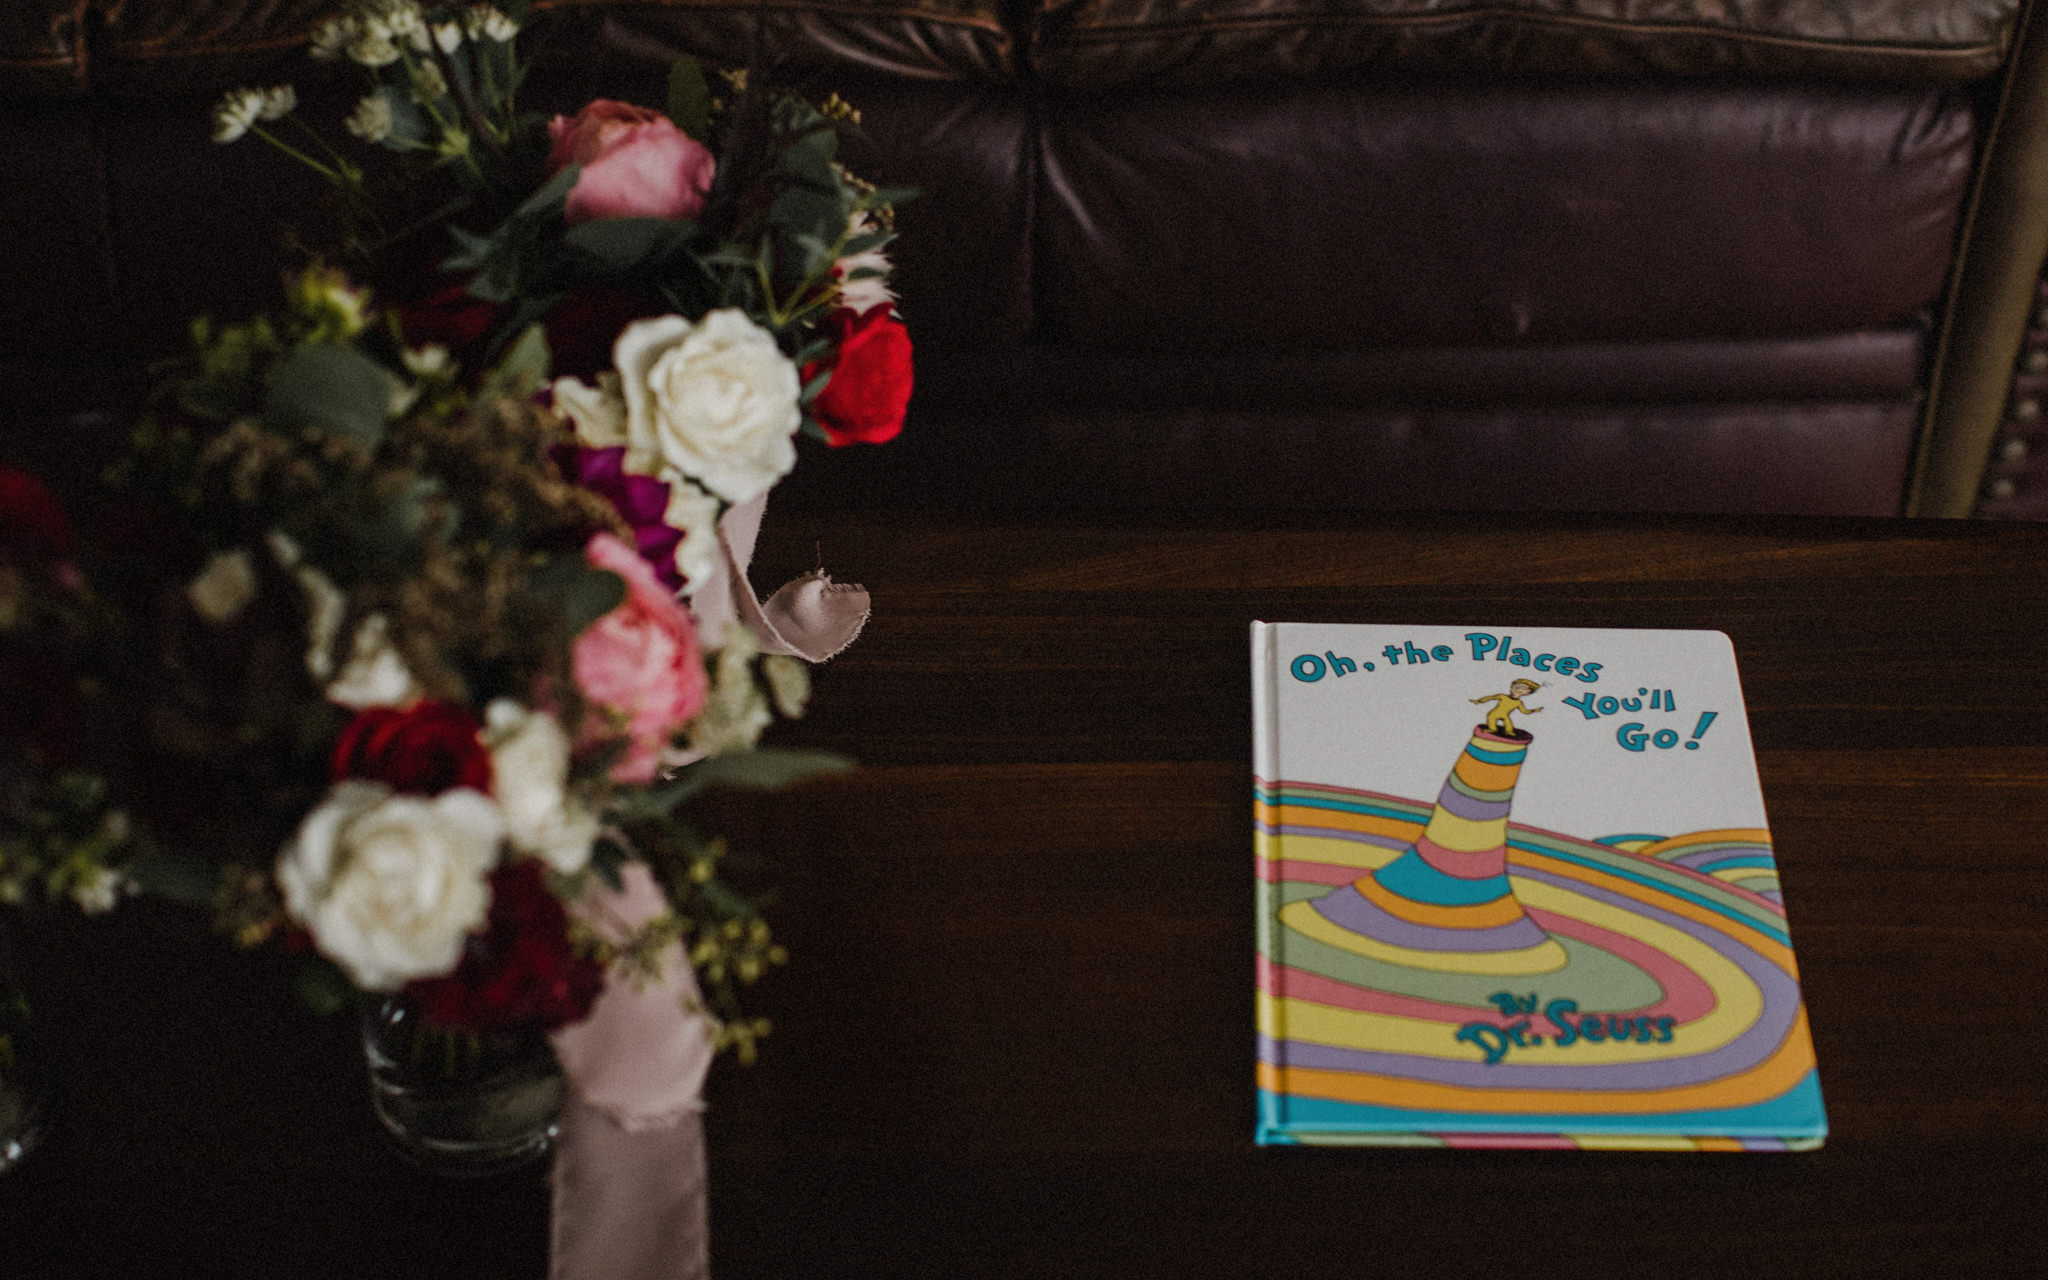 dr. seuss book on coffee table